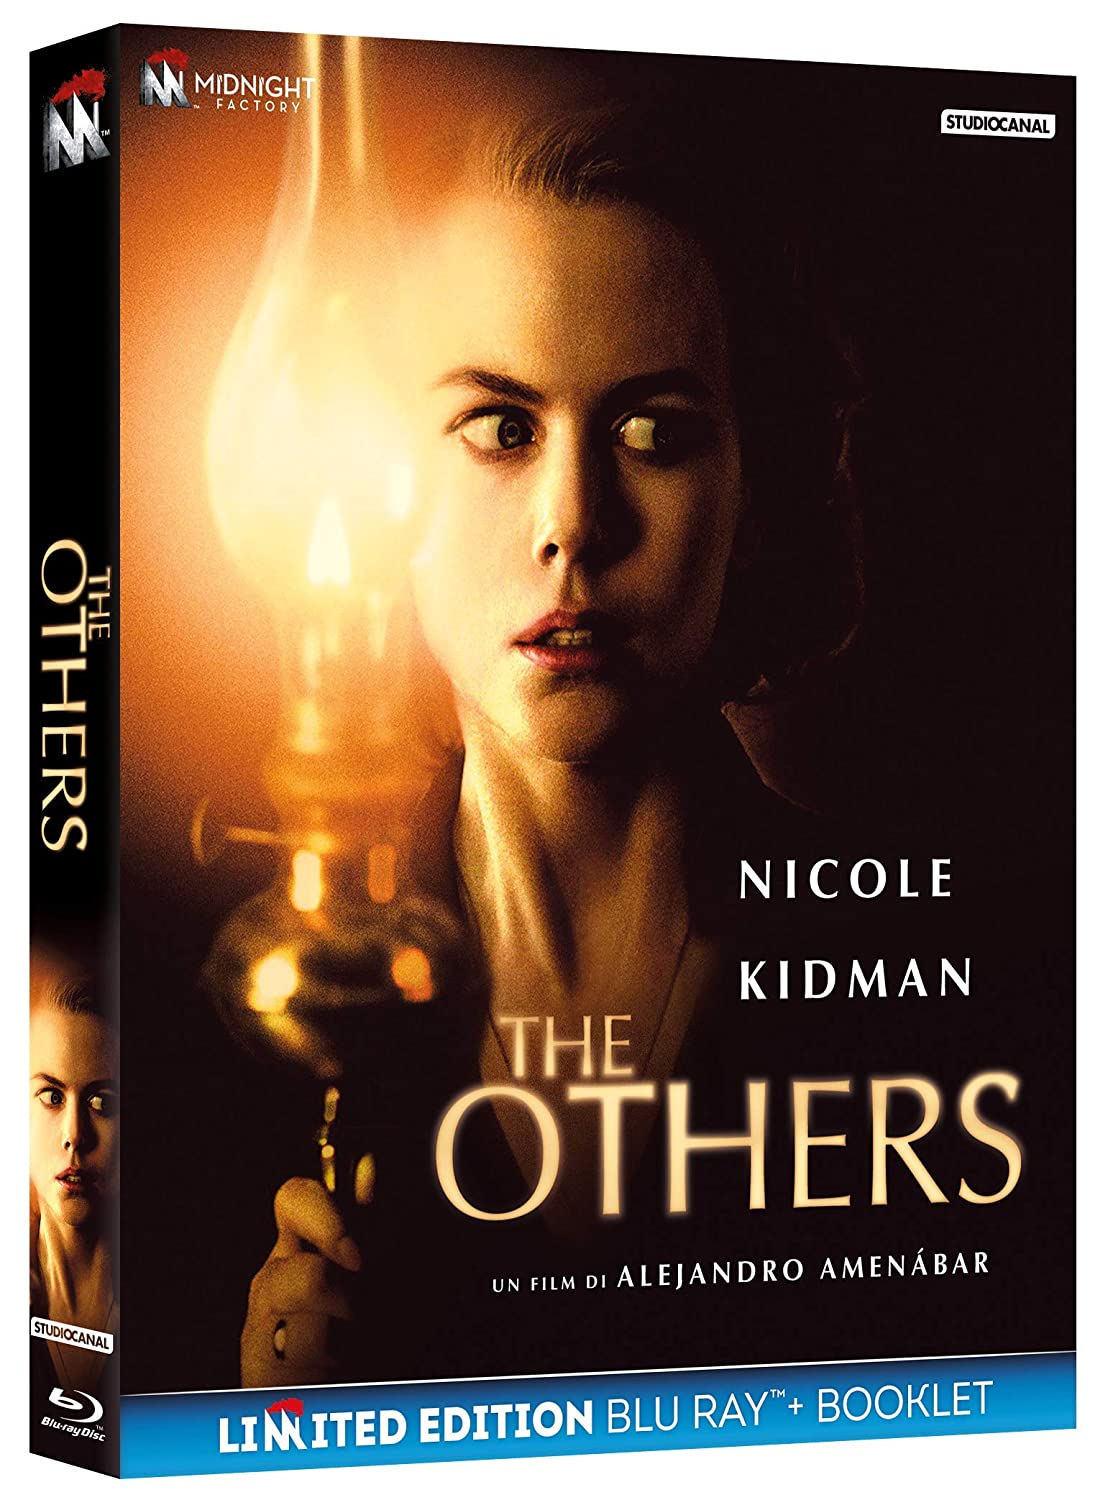 THE OTHERS (BLU-RAY+BOOKLET)